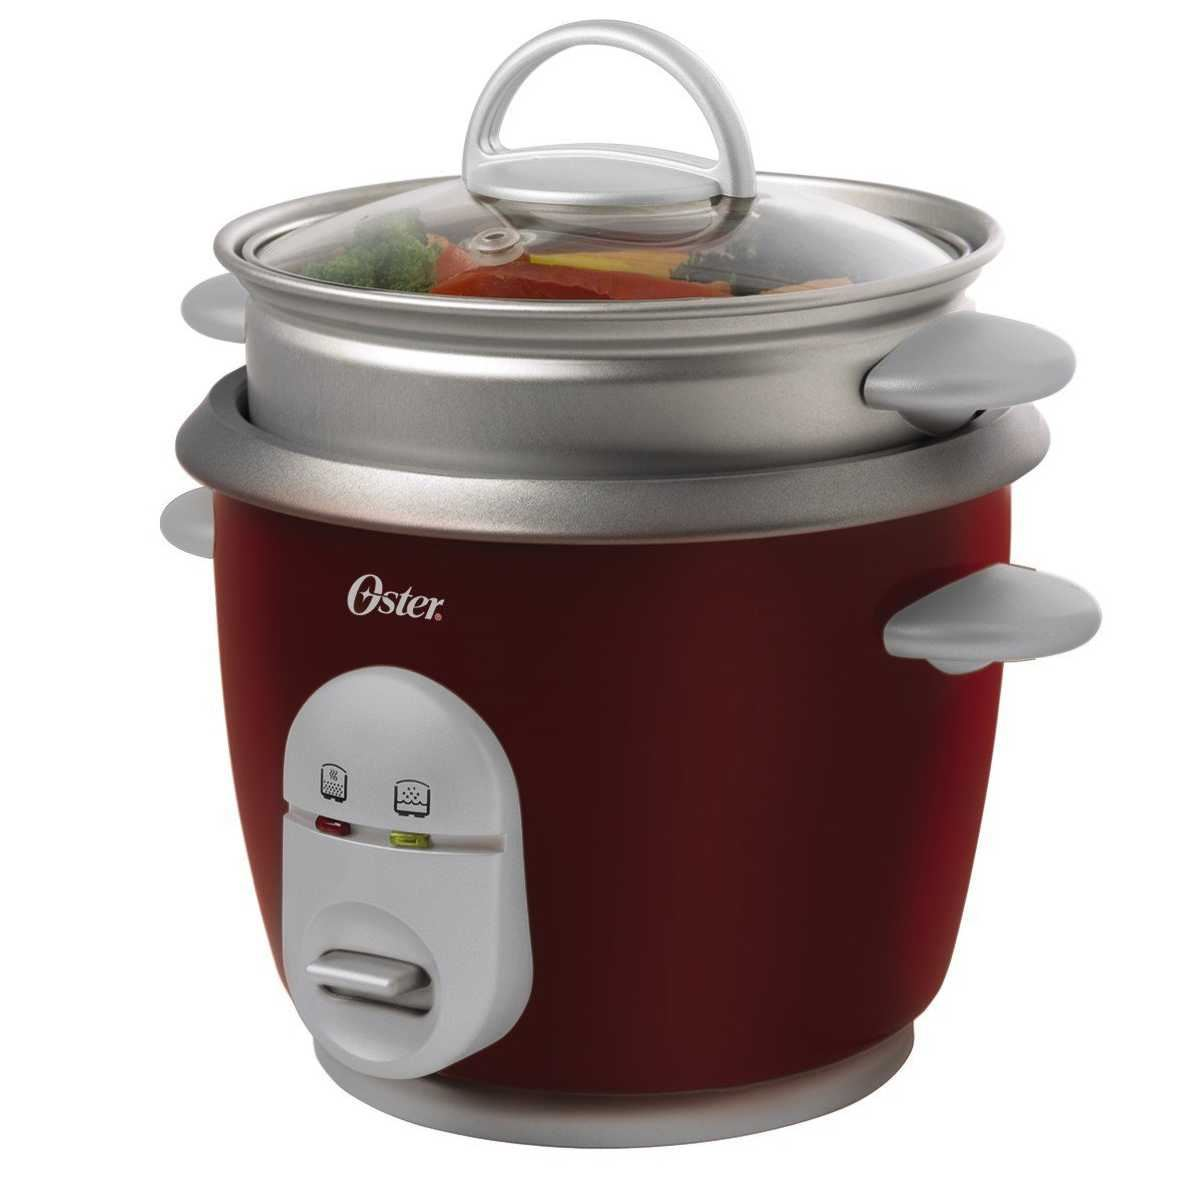 Picture of Oster Rice Cooker CKSTRC4722-049